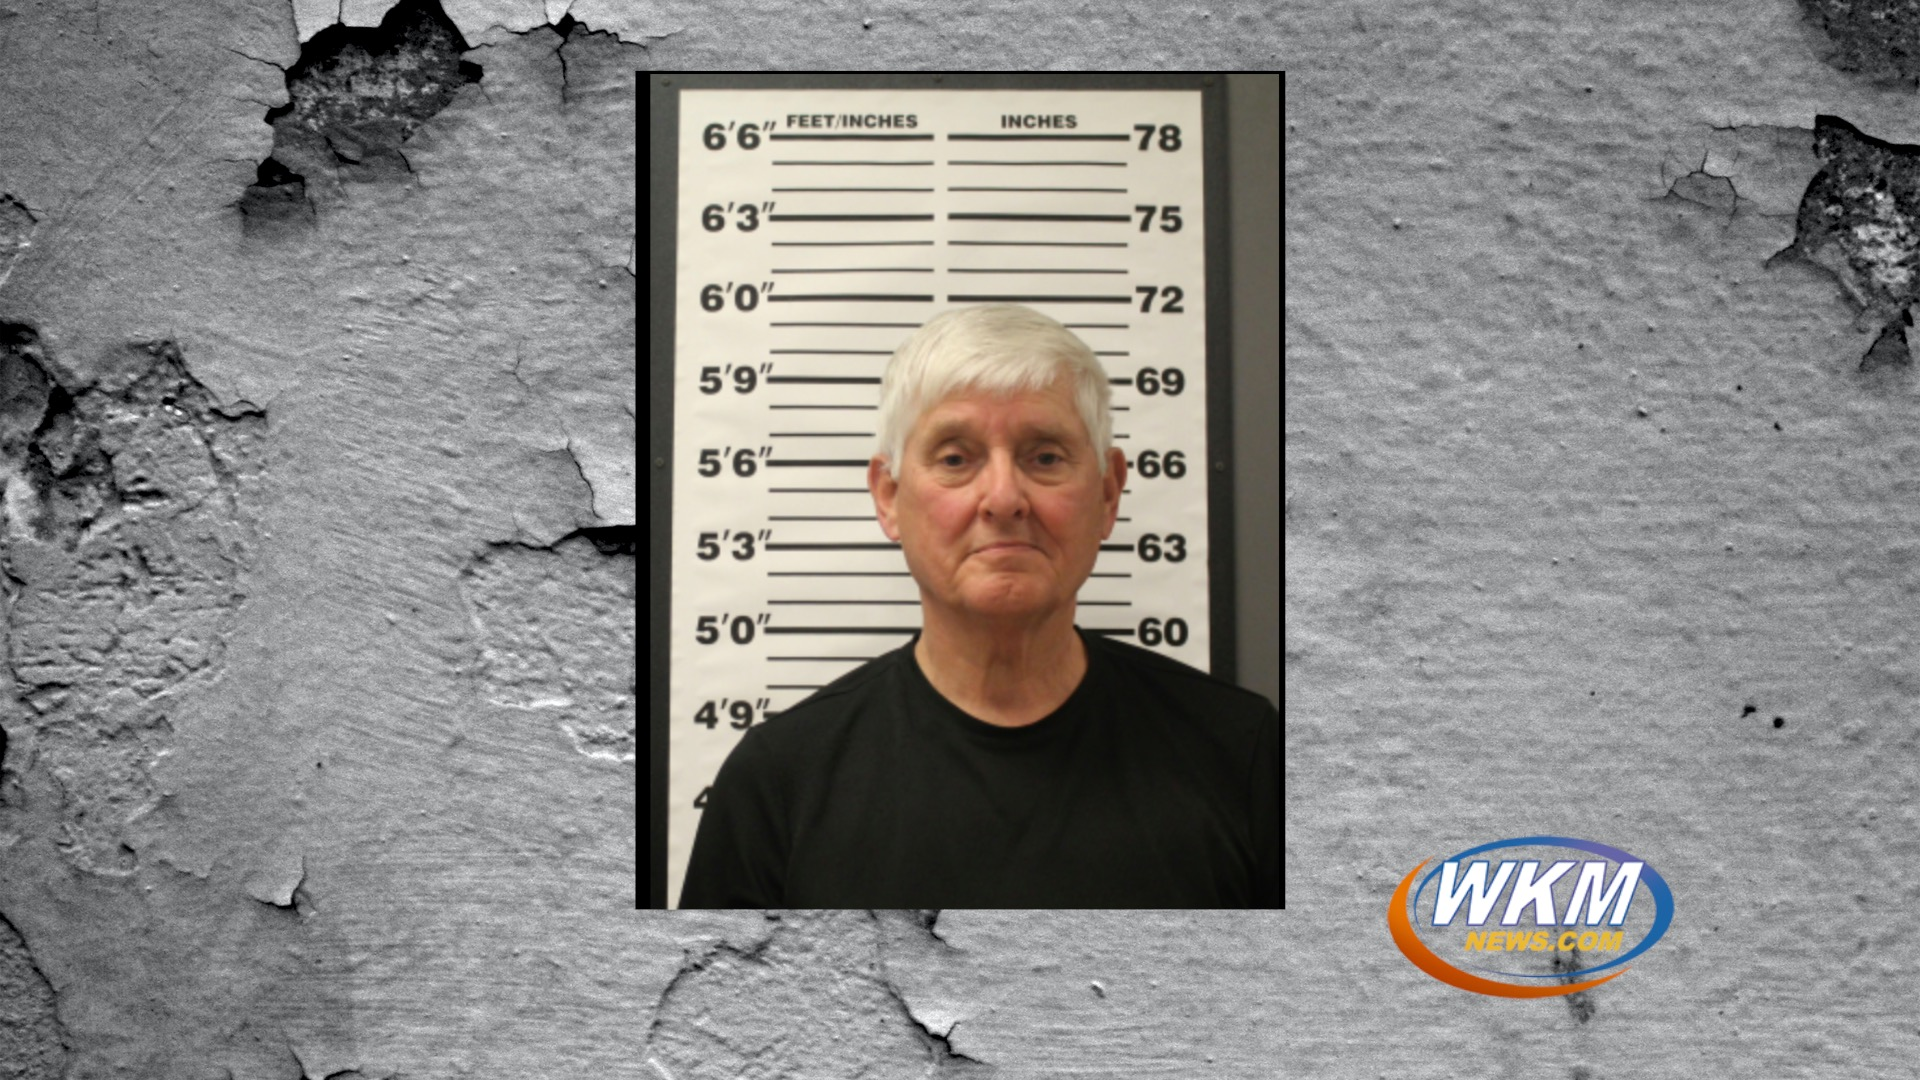 Cyber Tip for Sexual Misconduct Leads to Arrest of Hanover Man